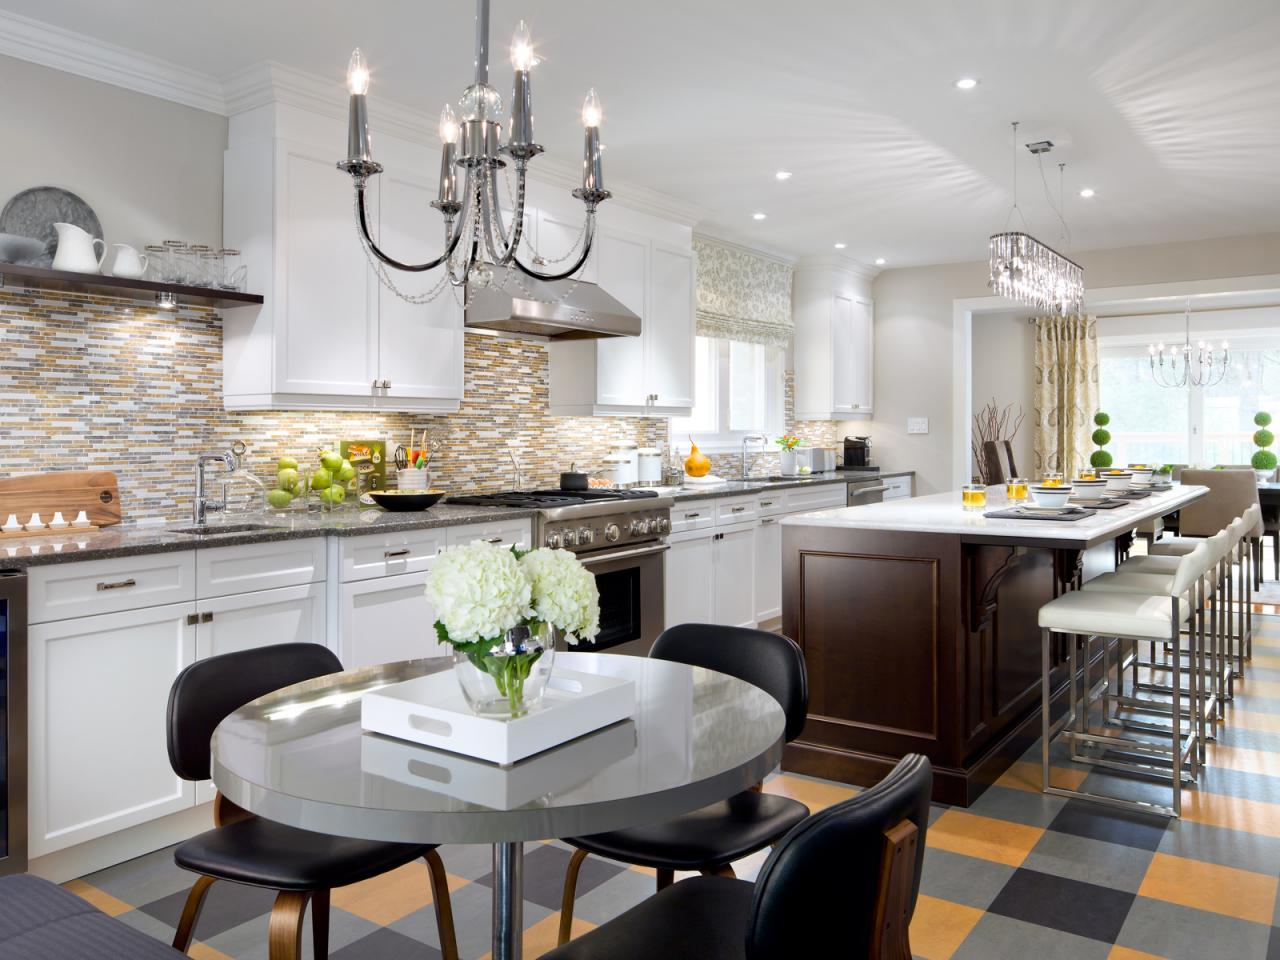 What You Need To Know When Designing A Galley Kitchen |